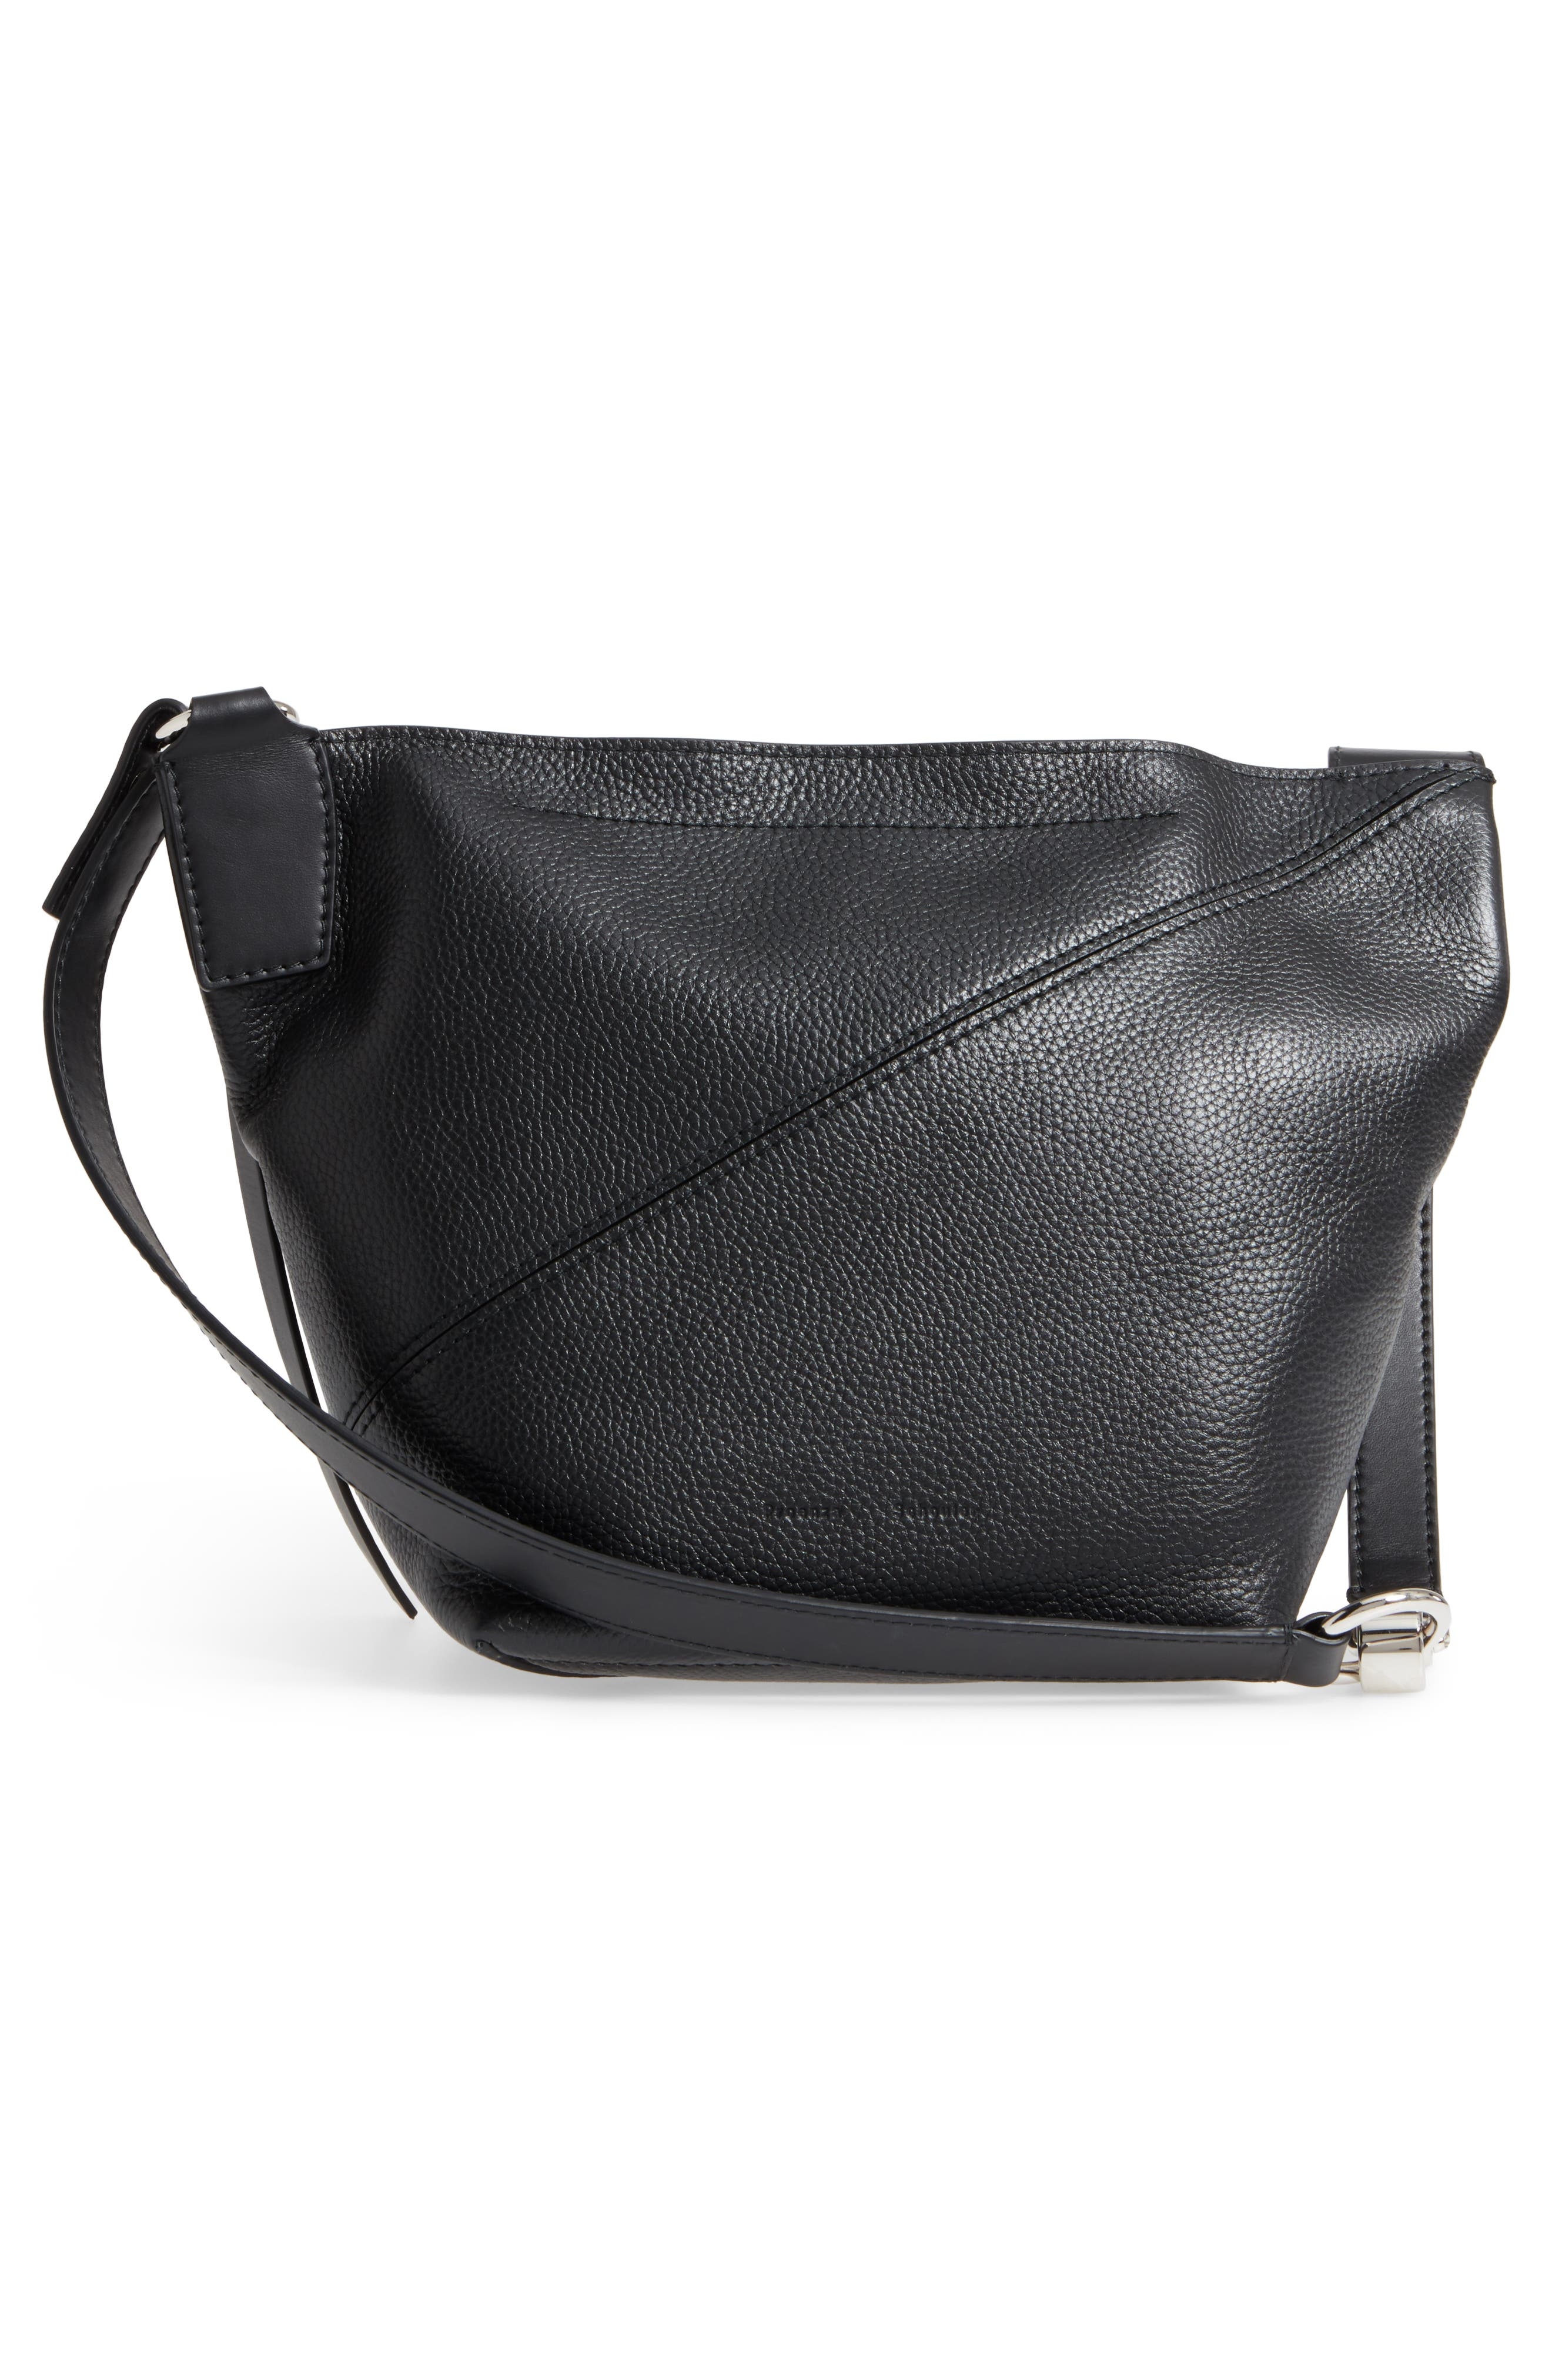 Alternate Image 3  - Proenza Schouler Small Leather Hobo Bag